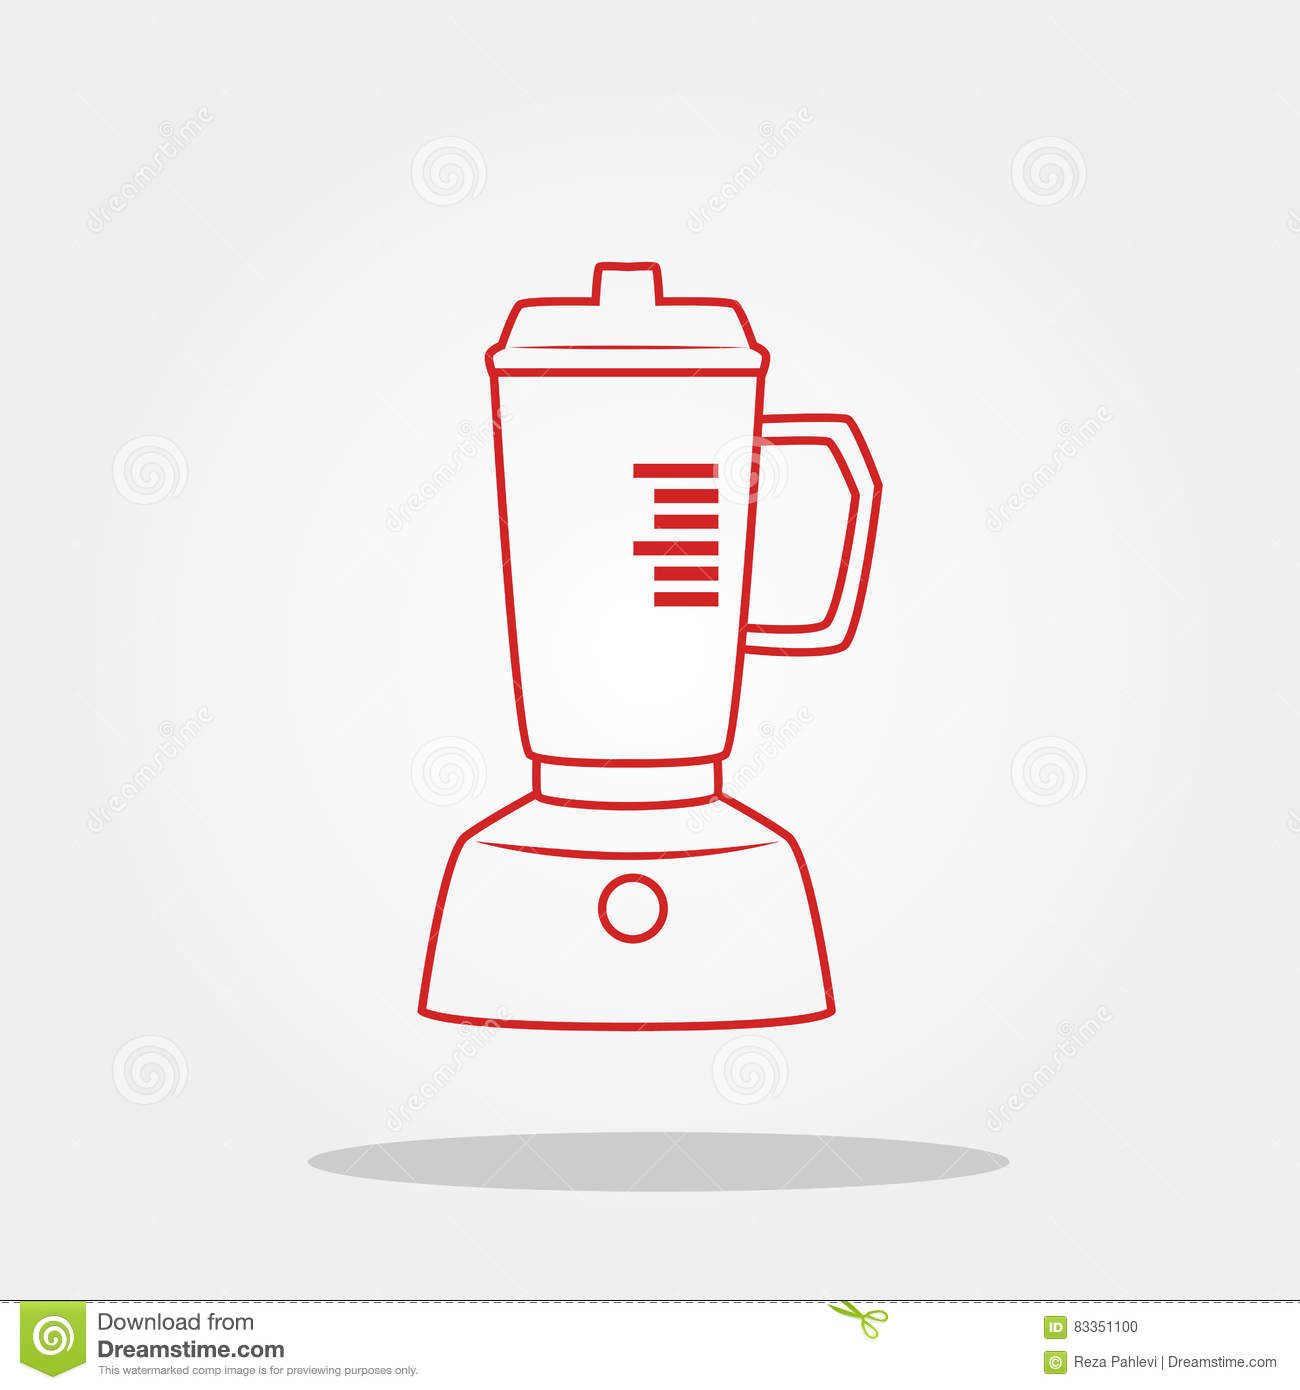 Blender Cute Icon In Trendy Flat Style Isolated On Color Background.  Kitchenware Symbol For Your